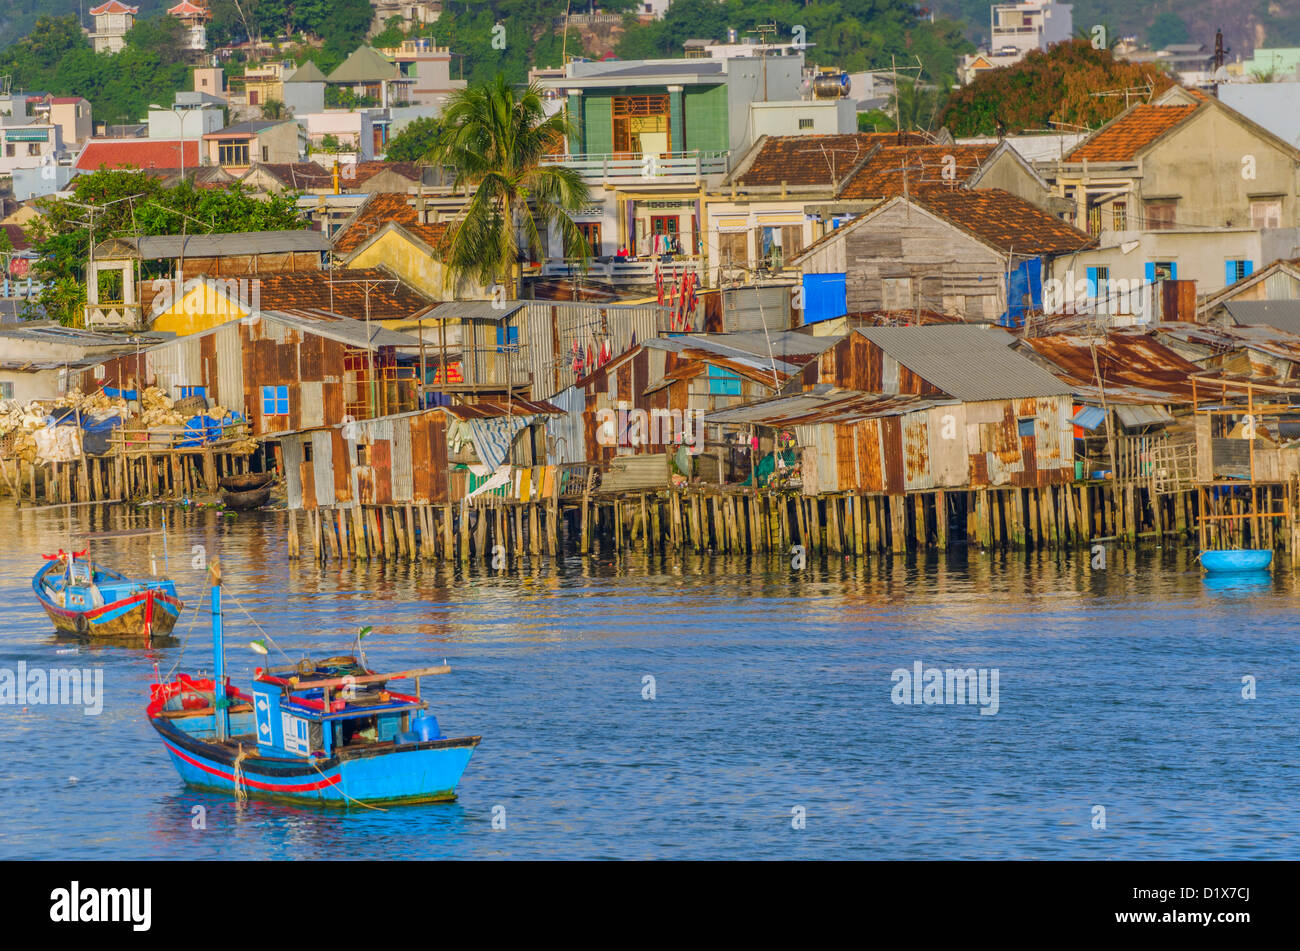 Fishing Boats in Nha Trang Harbor, Vietnam Stock Photo